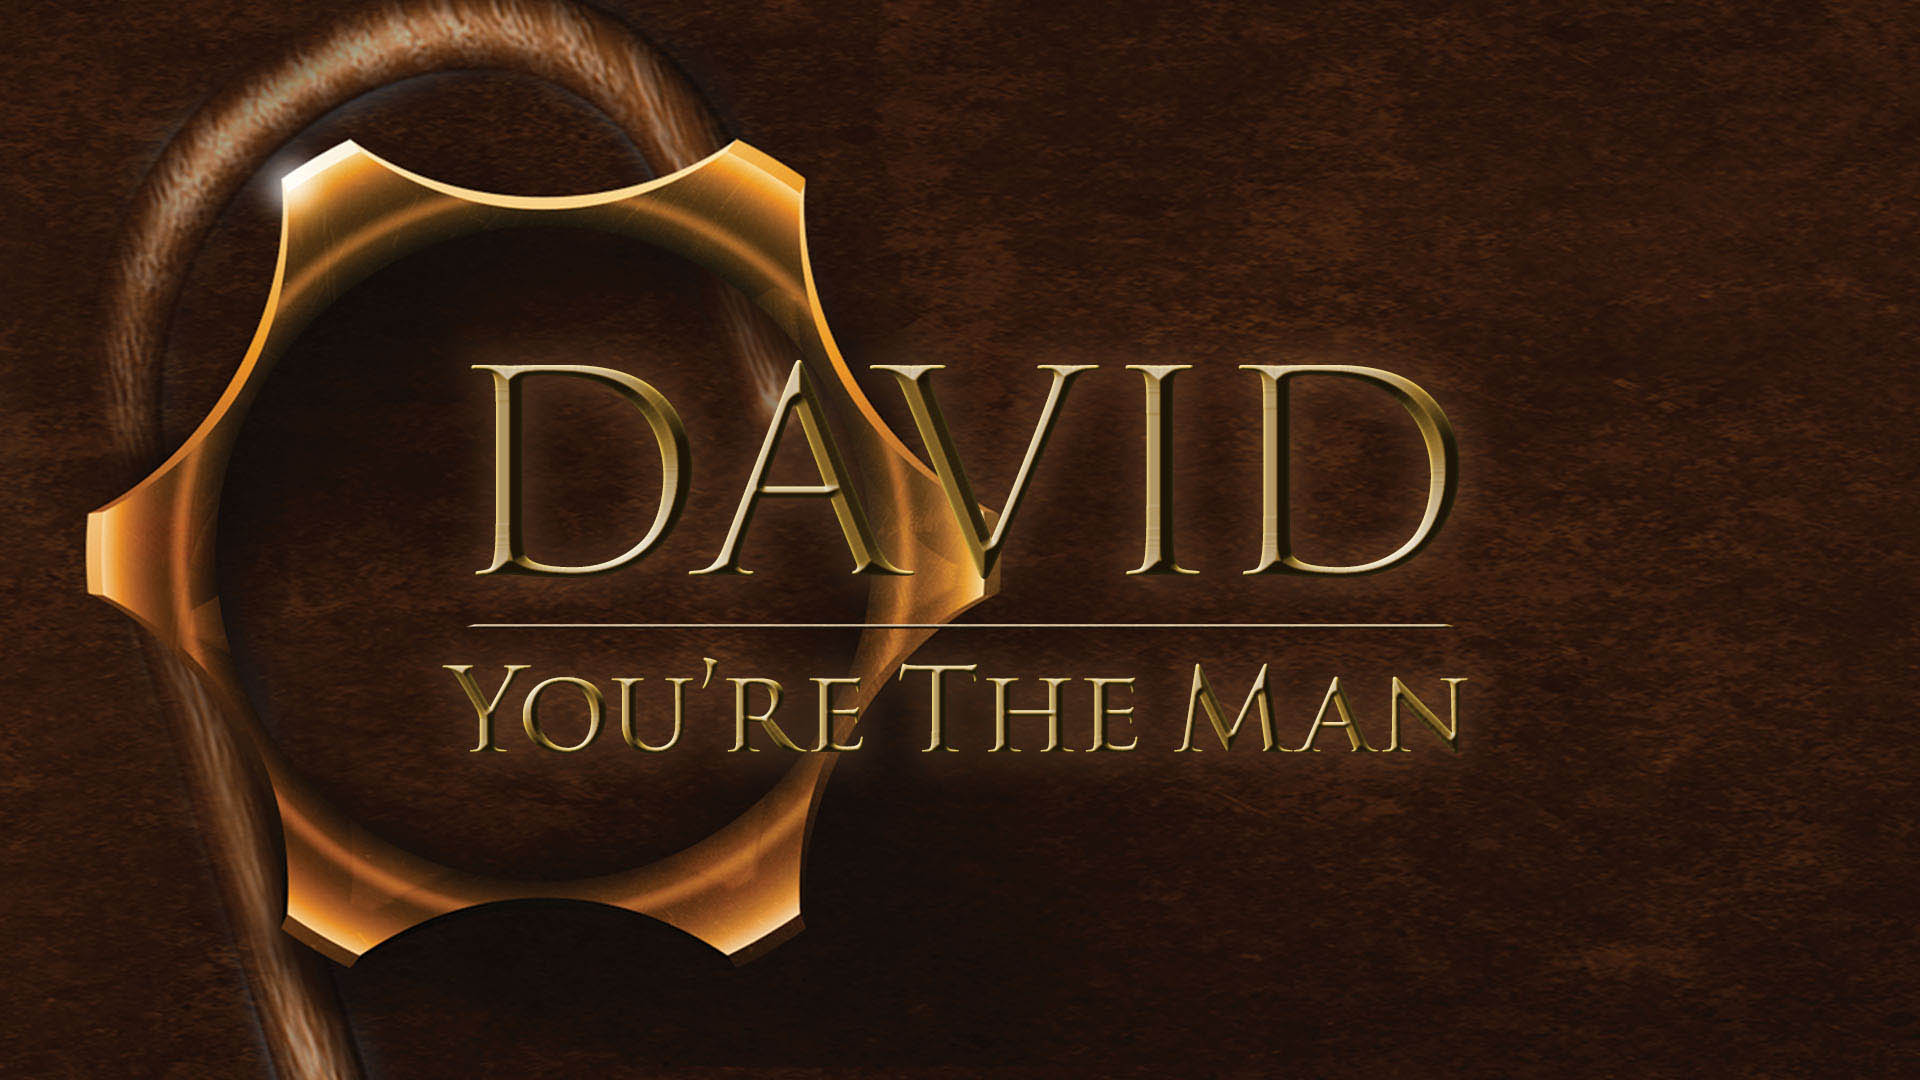 David - You're The Man